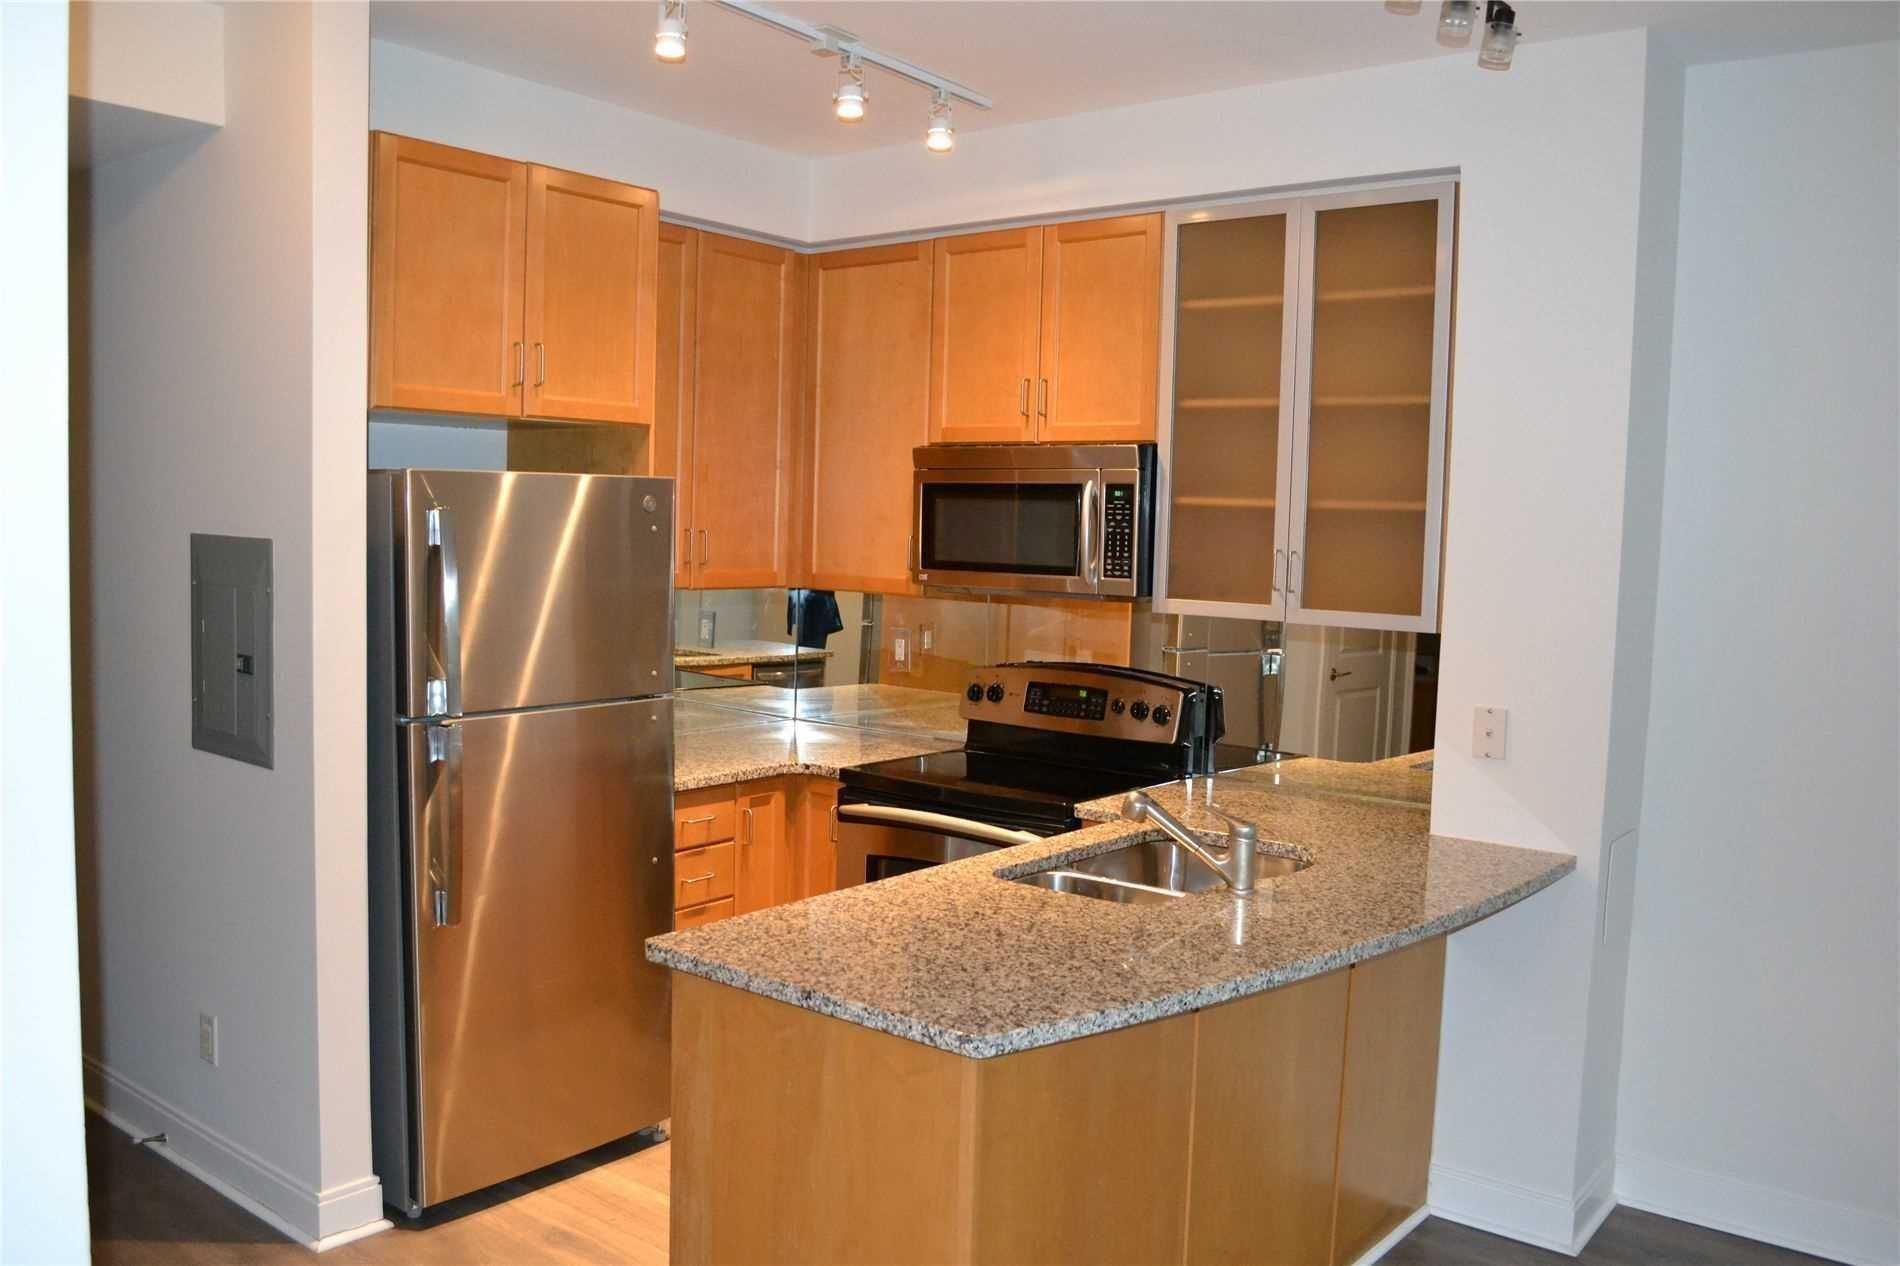 18 Yorkville Ave, unit 205 for rent in Toronto - image #1